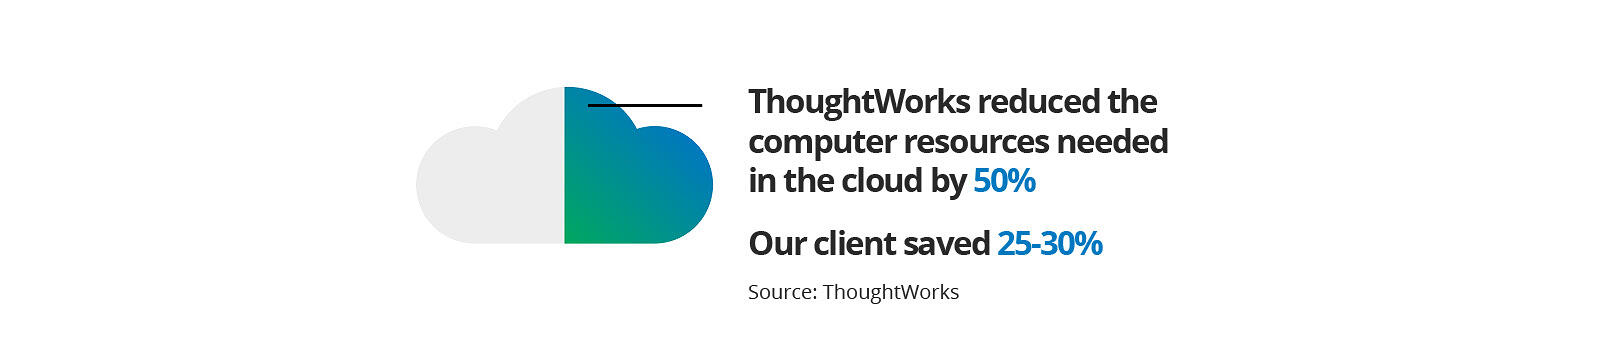 Optimizing applications for the cloud can result in significant savings